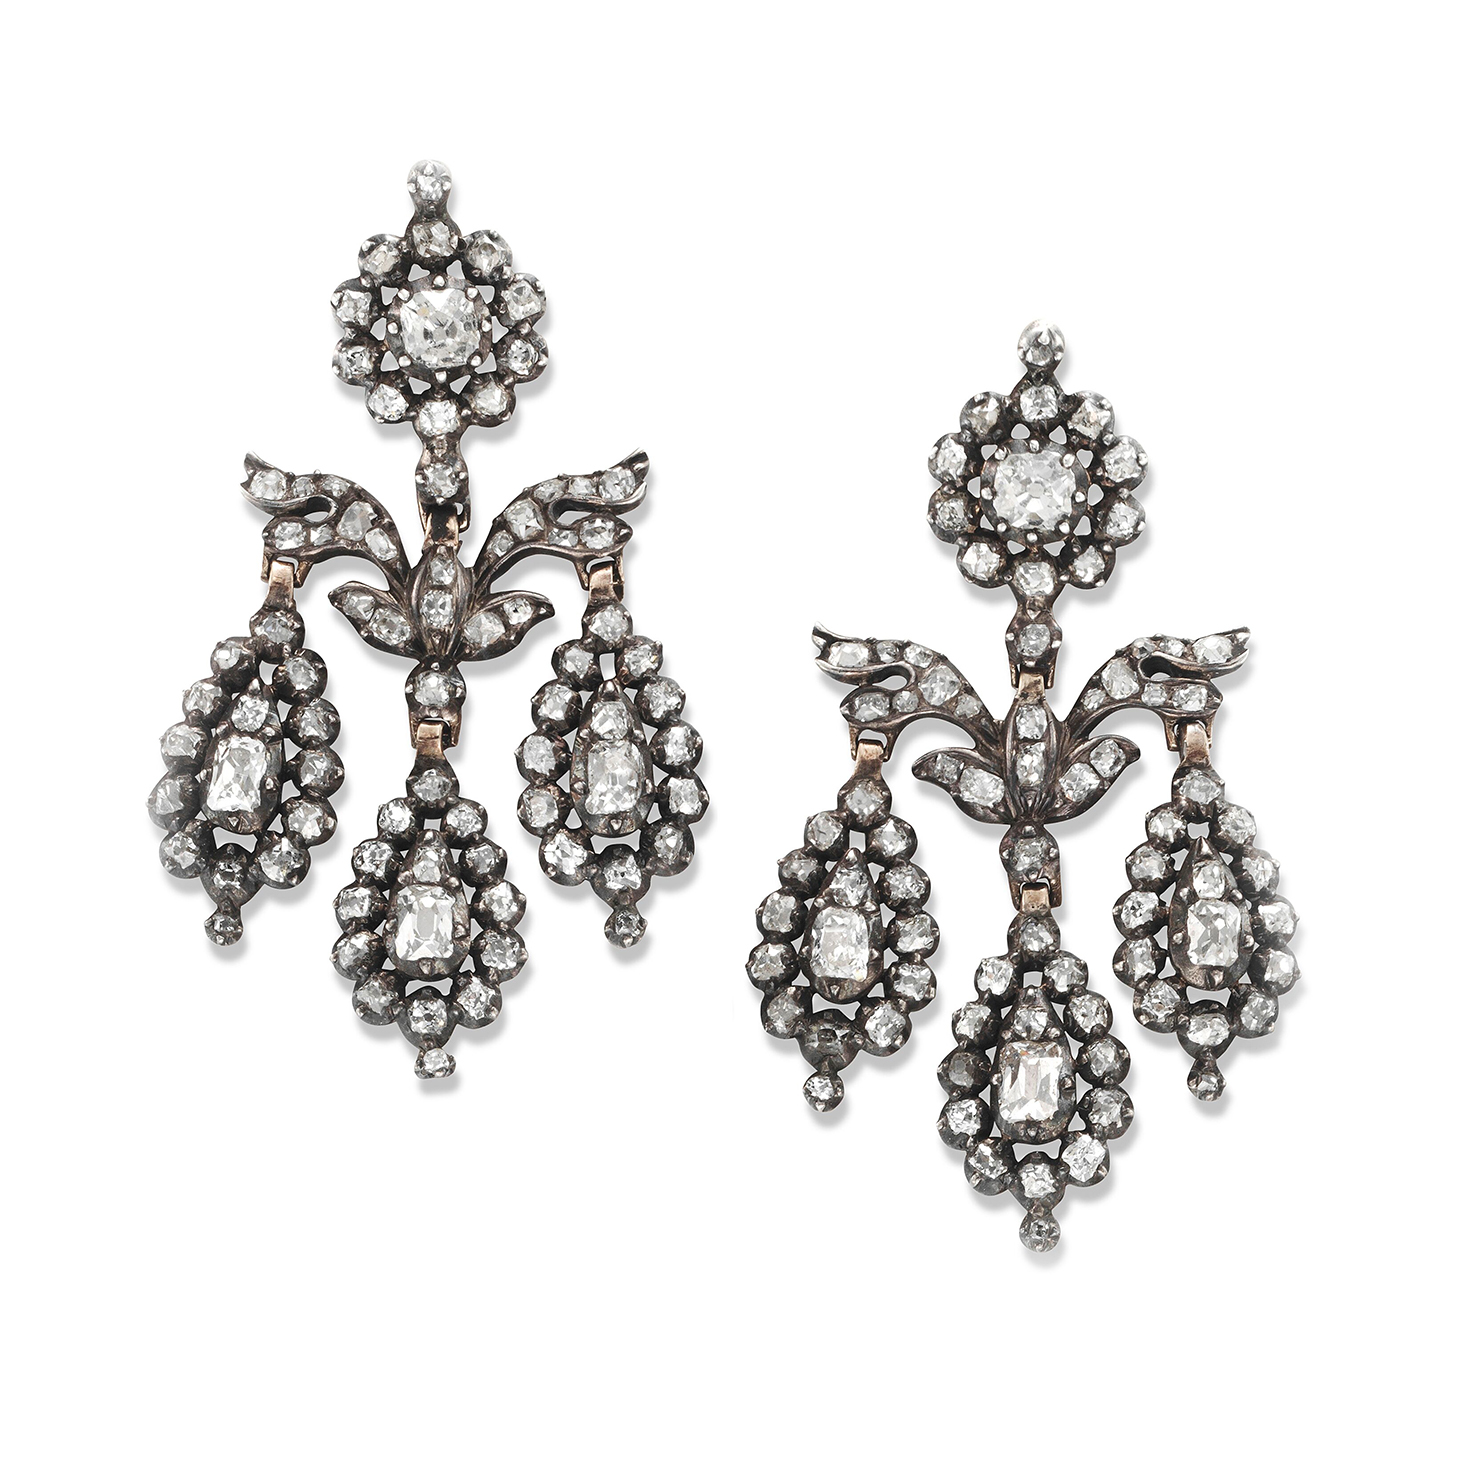 A Pair of Old Mine-cut Diamond Girandole Ear Pendants, circa 1850